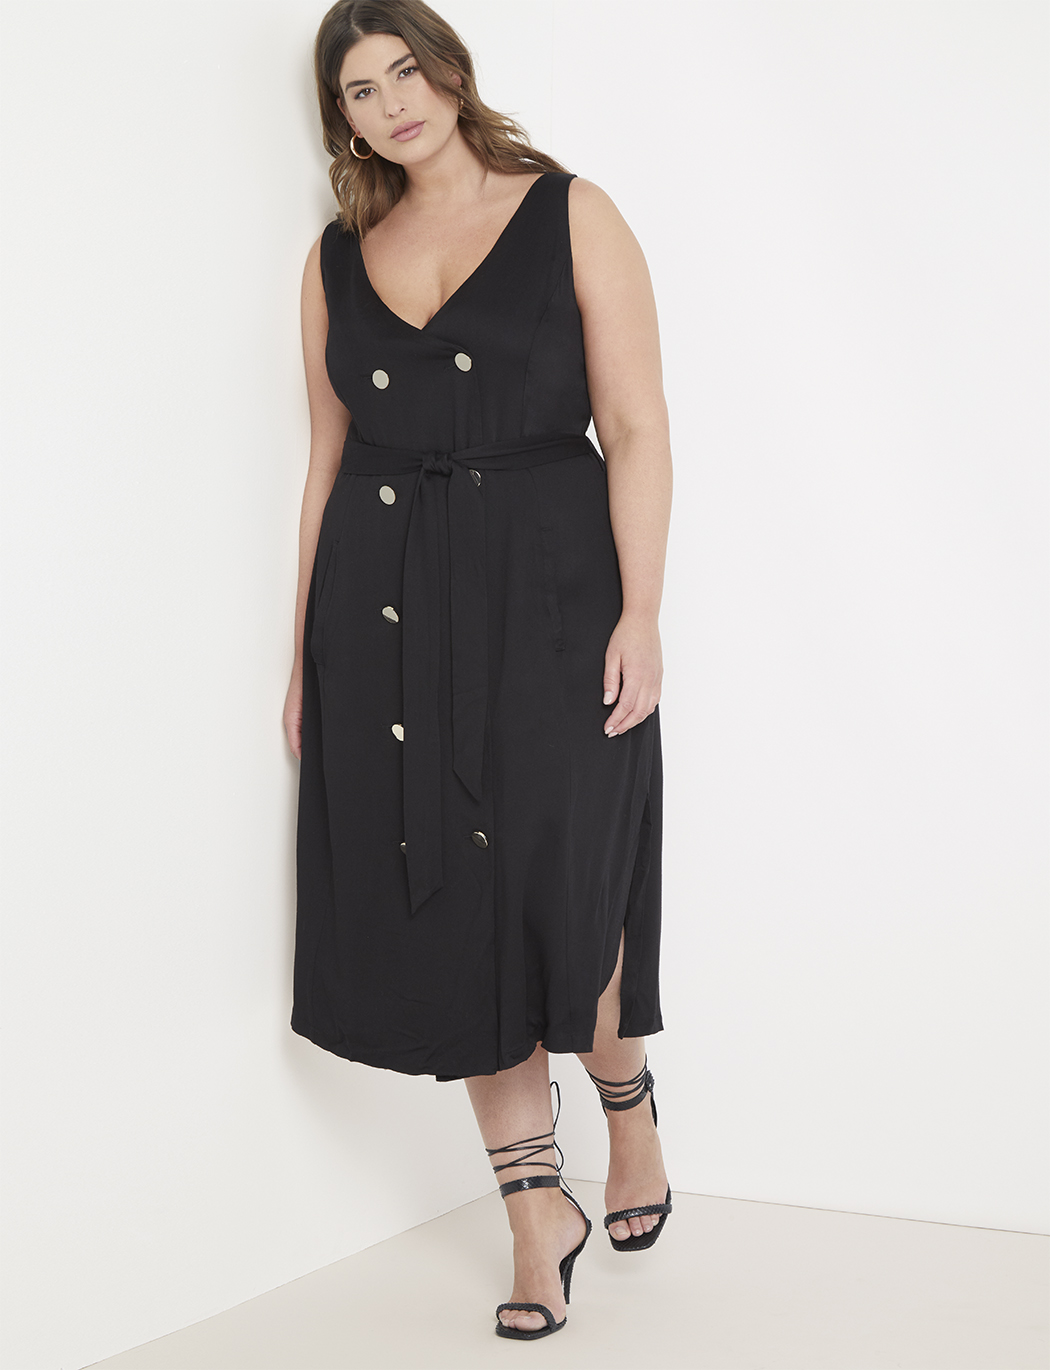 Button Front Dress | Women\'s Plus Size Dresses | ELOQUII